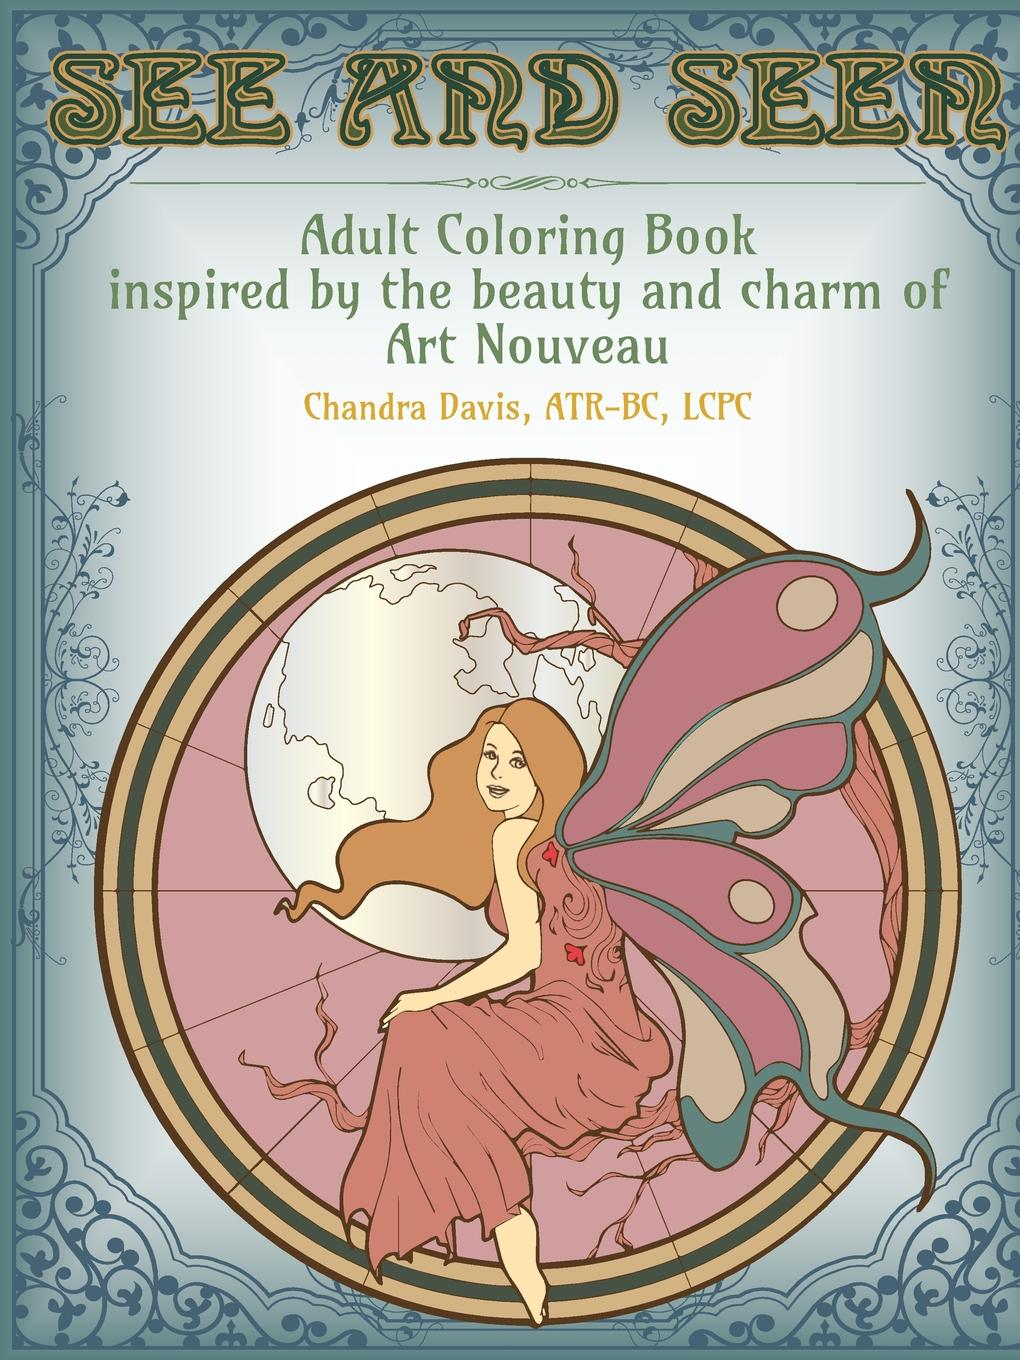 Chandra Davis See and Seen. An Adult Coloring Book inspired by the Beauty and Charm of Art Nouveau 20 ways to draw a dress and 44 other fabulous fashions and accessories coloring book for adult children 112 page